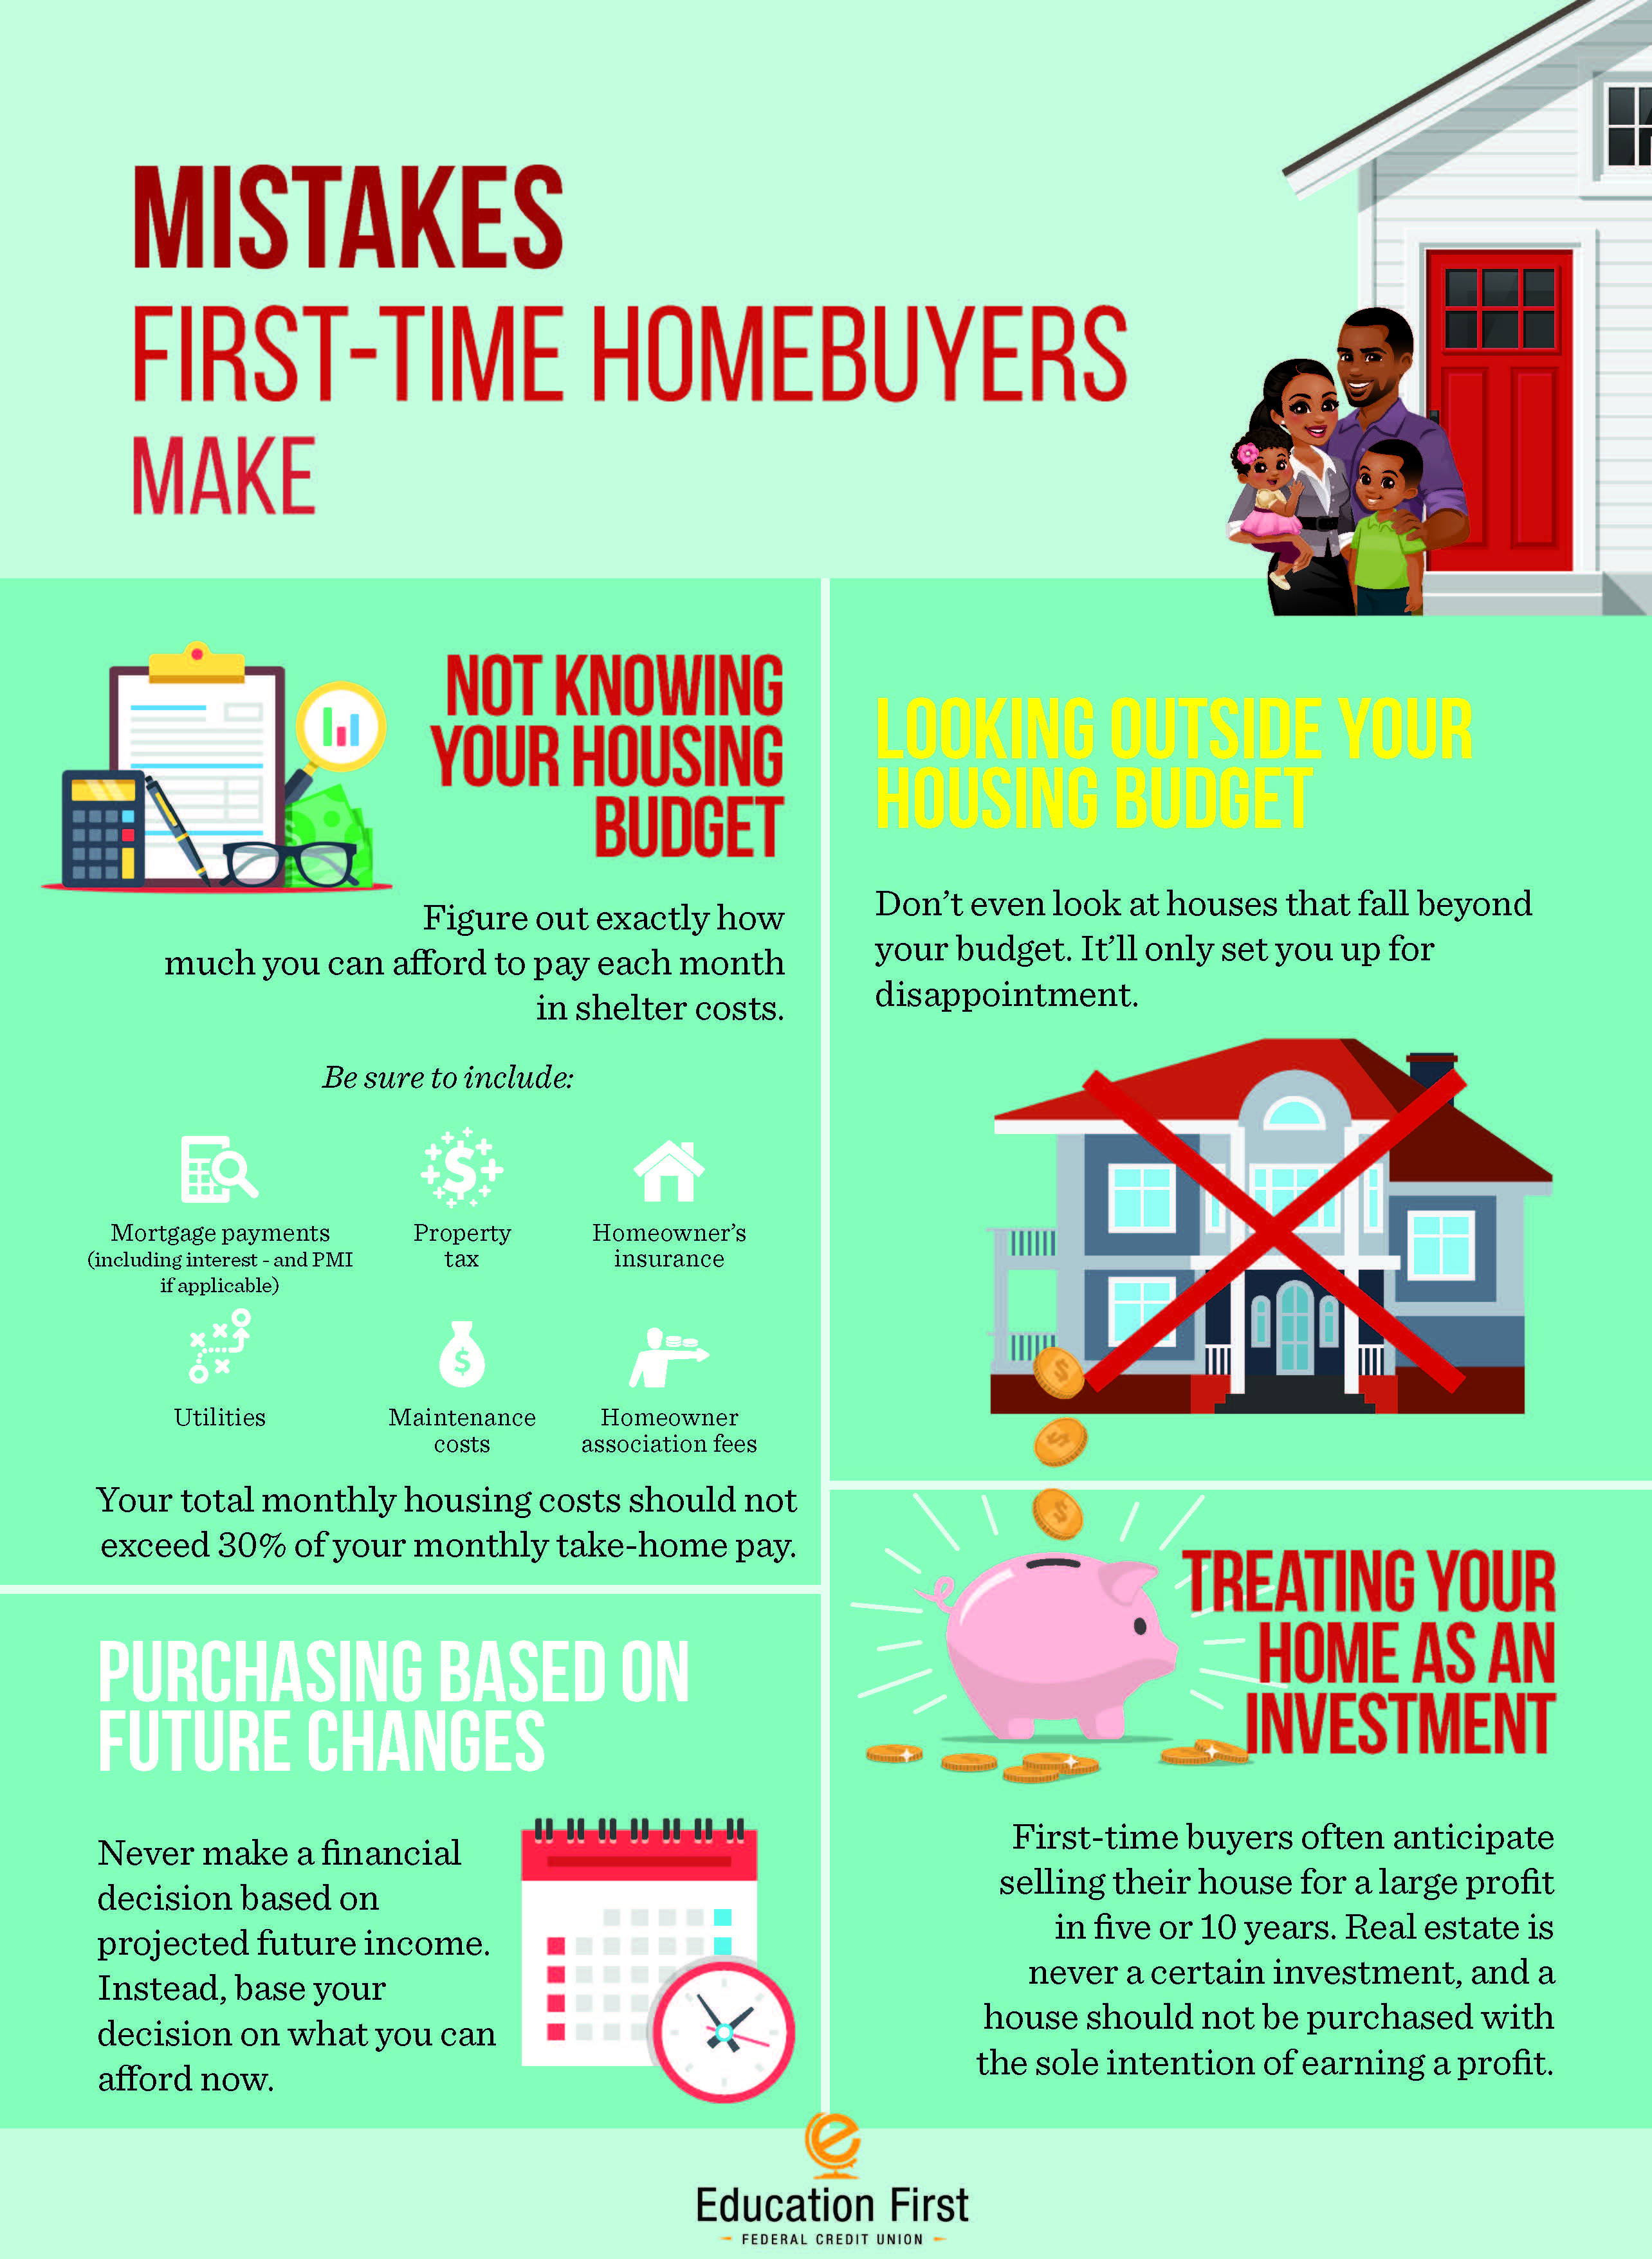 Mistakes first time homebuyers make